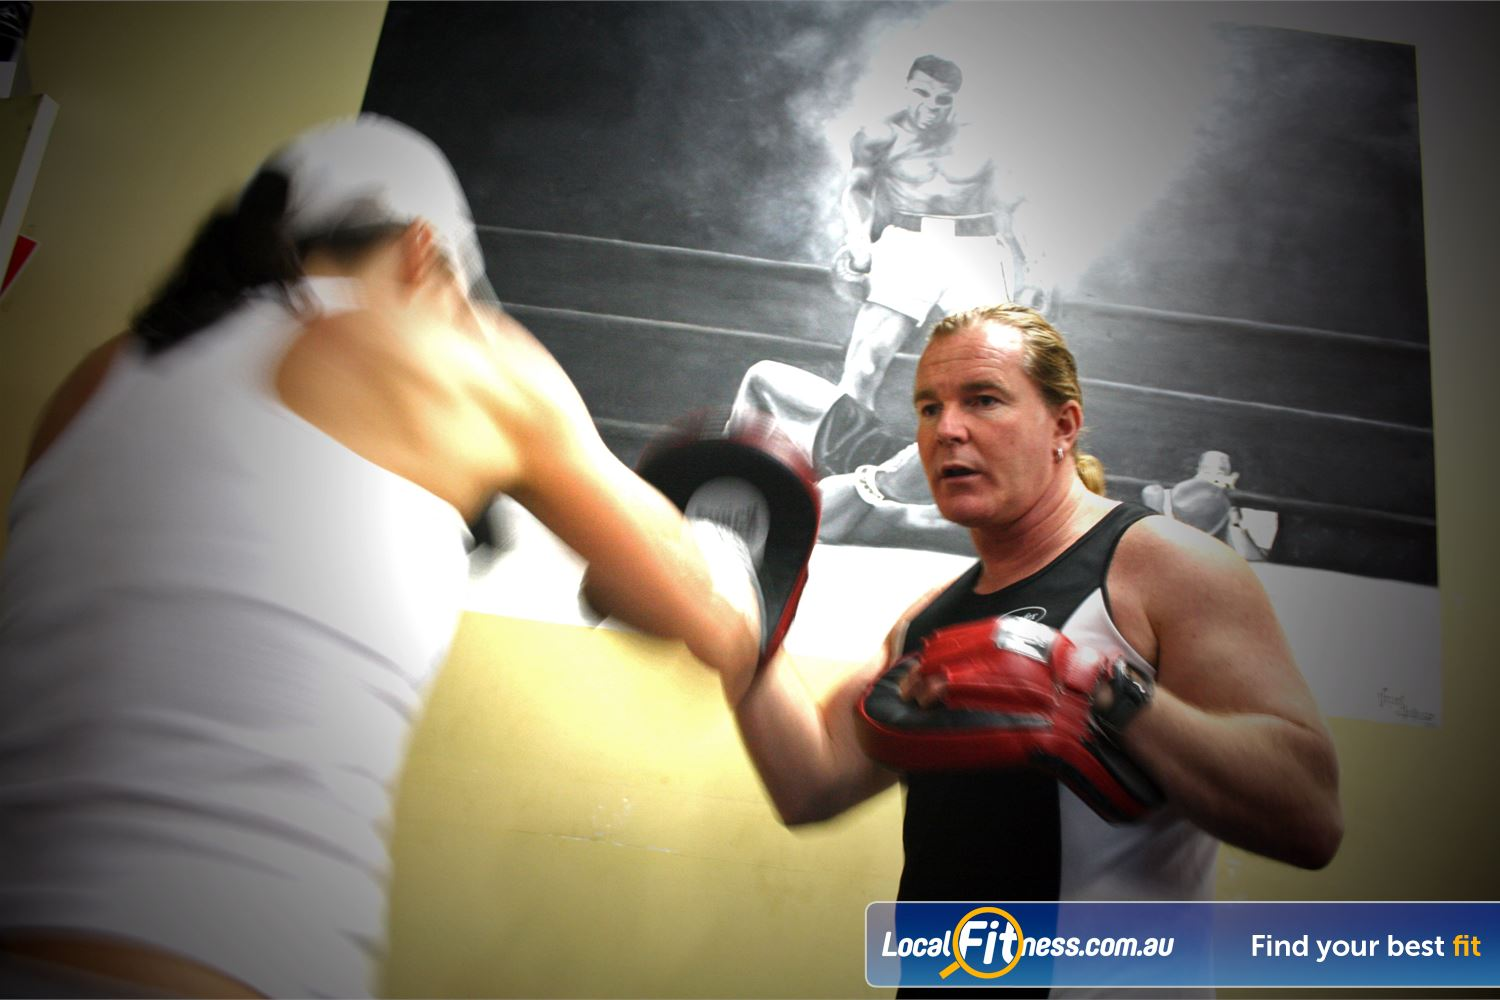 FITafex Gymnasium Essendon Our qualfiied boxing coaches teach you how to really box.